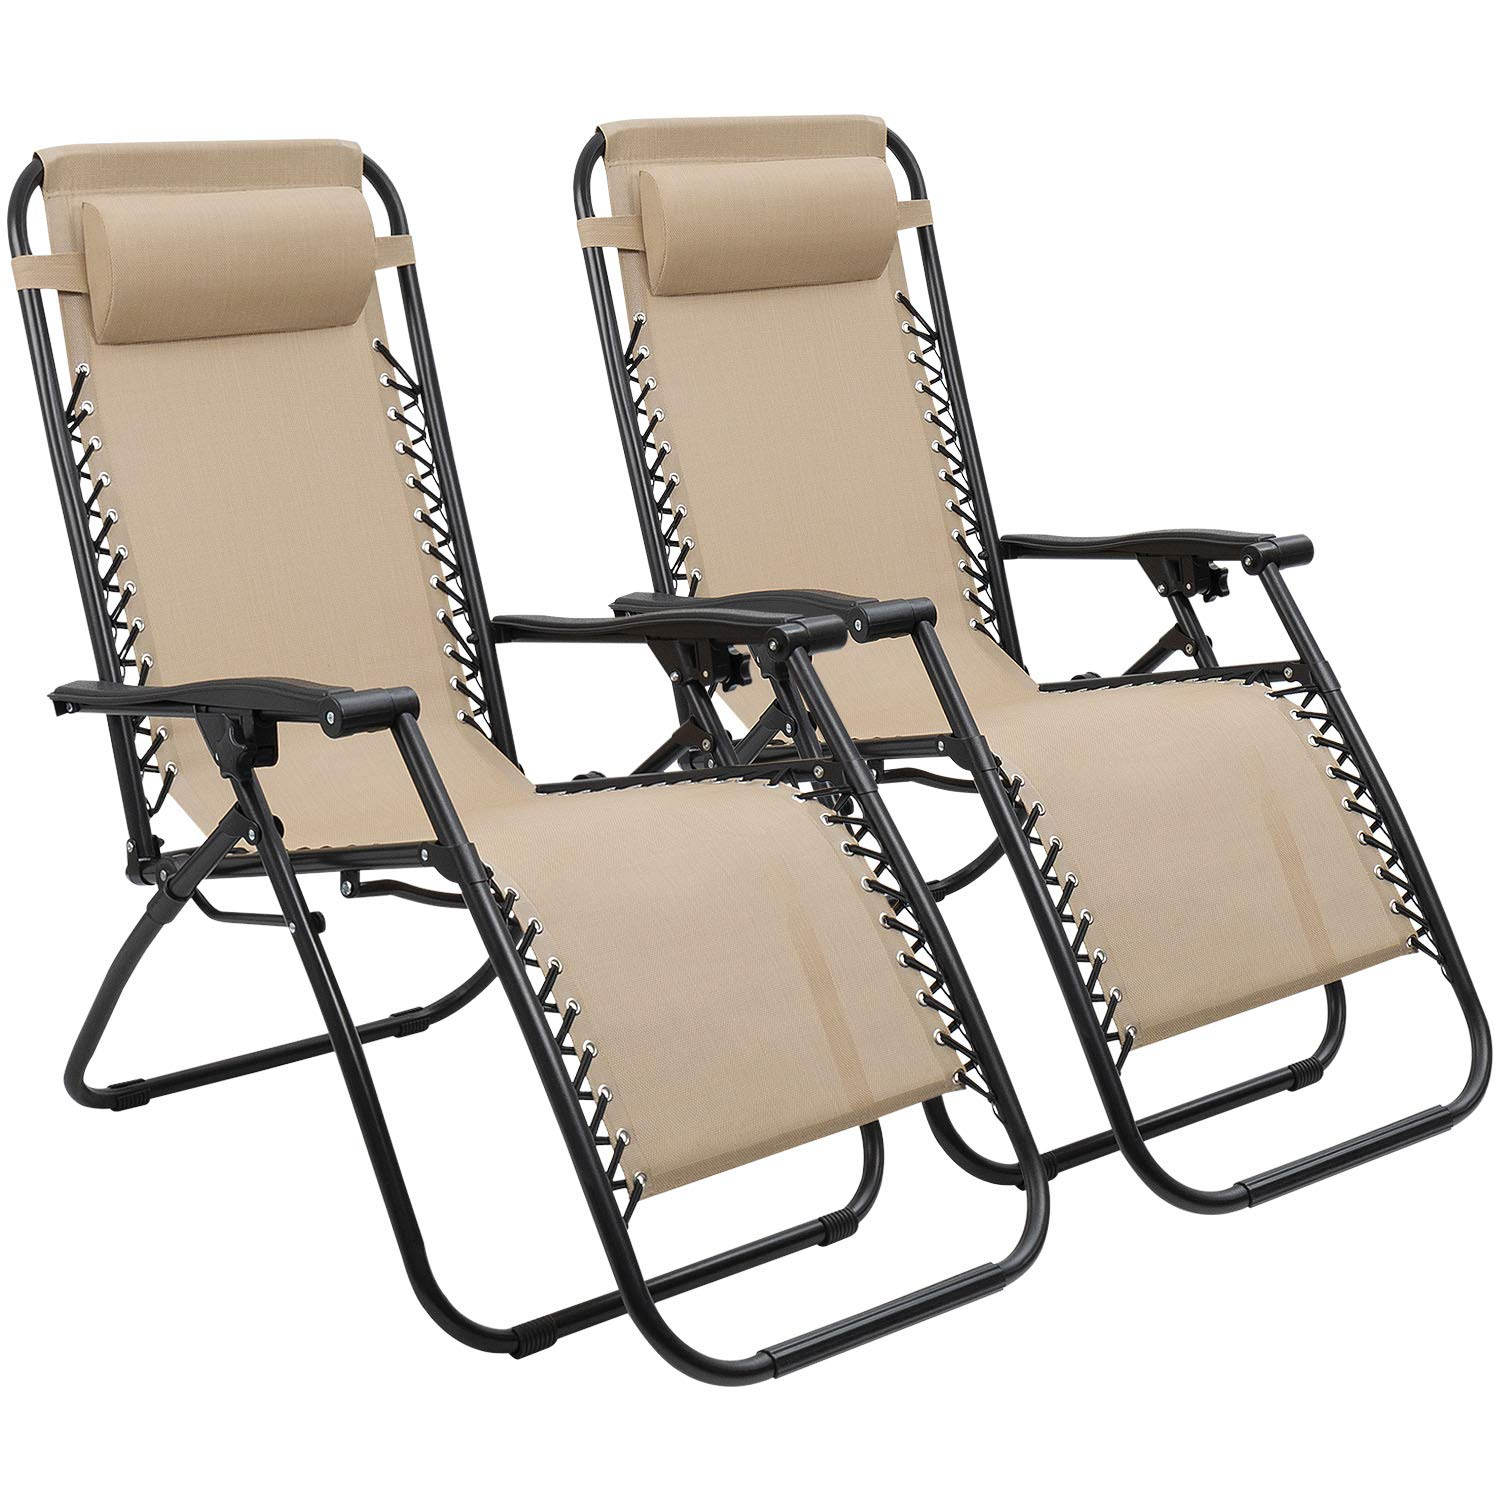 Devoko Patio Zero Gravity Chair Outdoor Folding Adjustable Reclining Chairs Pool Side Using Lawn Lounge Chair with Pillow Set of 2 (Beige) by Devoko (Image #7)